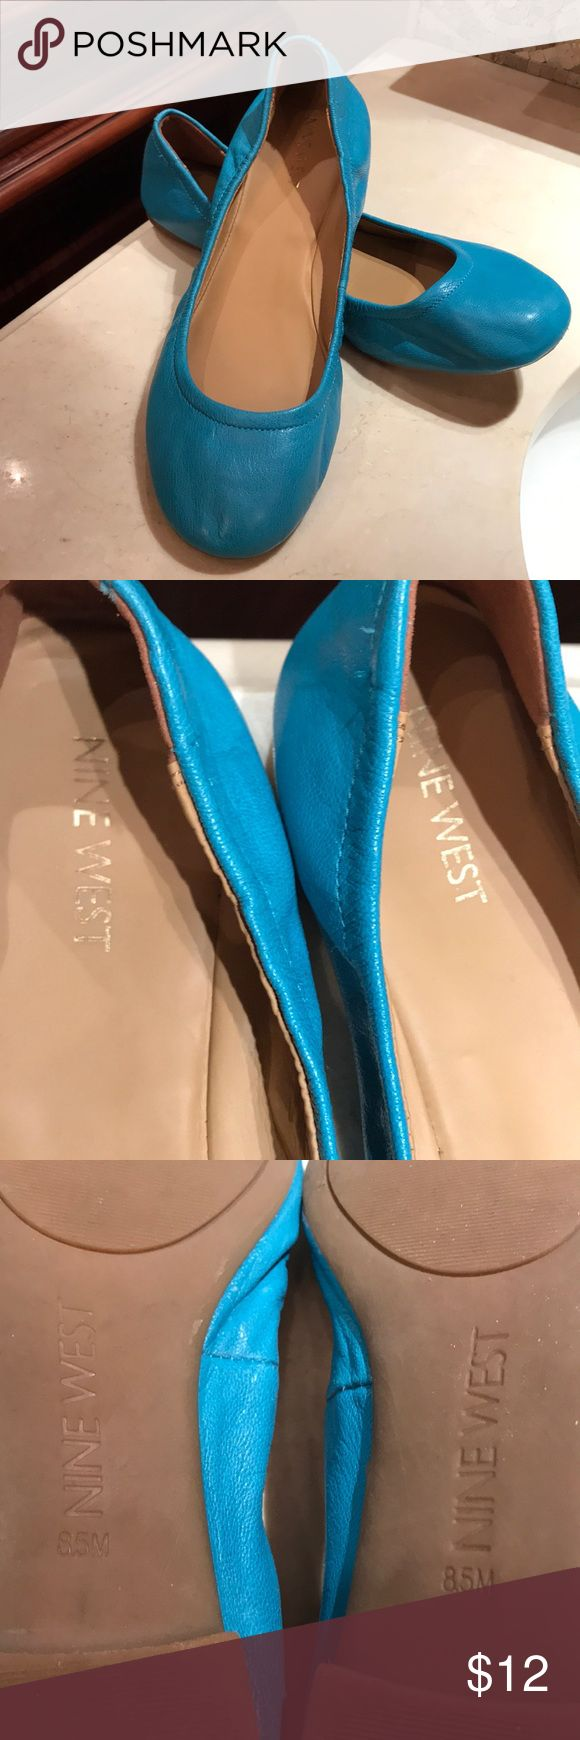 Nine West ballet slip on shoe Women's leather aqua blue ballet slip on shoe. Good condition..worn once..left shoe as depicted in pic small scratch on front of shoe.. Nine West Shoes Flats & Loafers